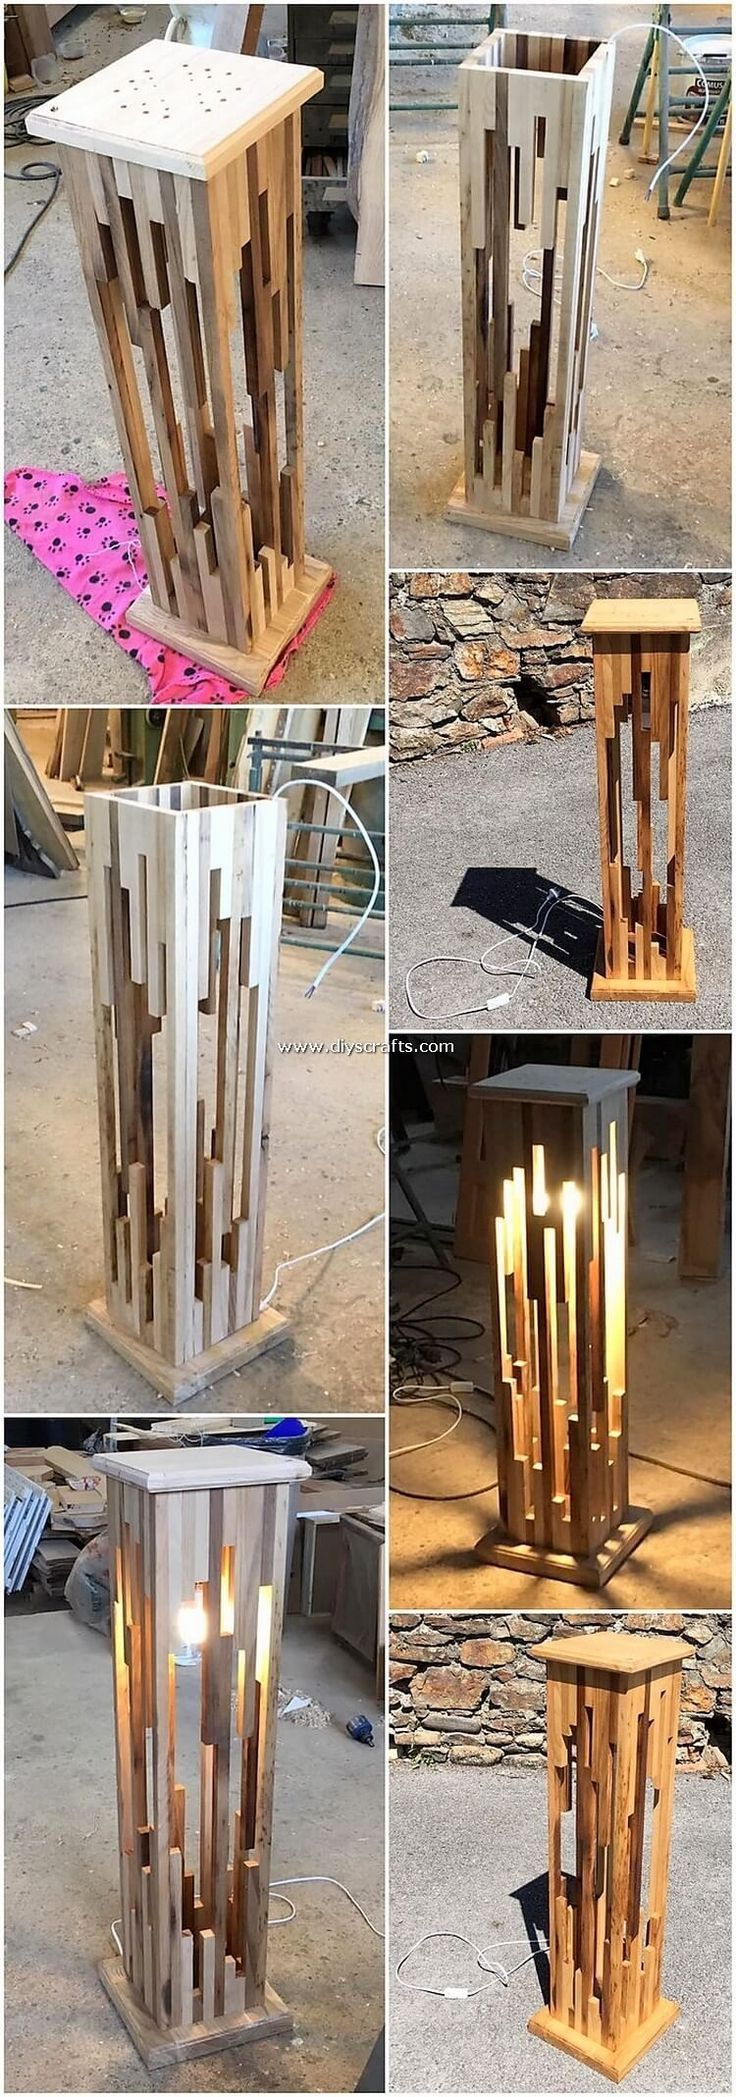 Unplausible DIY-Kreationen aus Holzpaletten DIY & Crafts #crafts #woodpale ... -  Unplausible DIY-Kreationen aus Holzpaletten Basteln & Basteln #handwerk #holzpaletten #kreationen # - #amp #aus #crafts #DIY #DIYKreationen #holzpaletten #kreationen #unplausible #woodpale